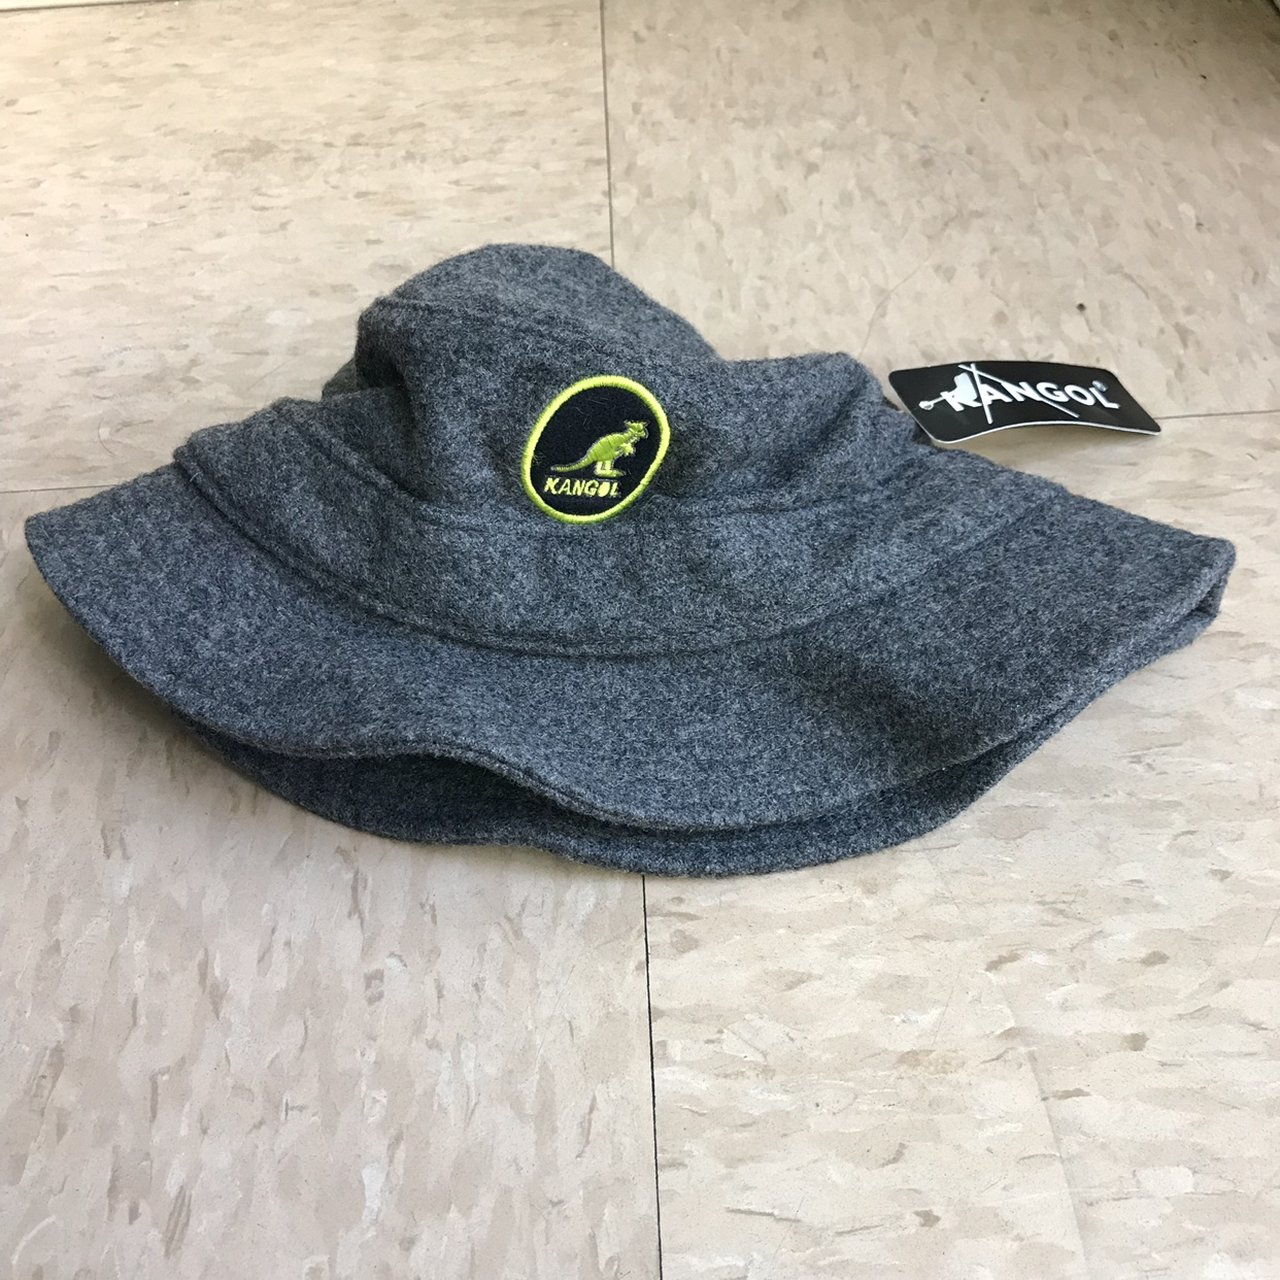 Kangol bucket hat size small to medium brand new with US - Depop 90eac9a67aa